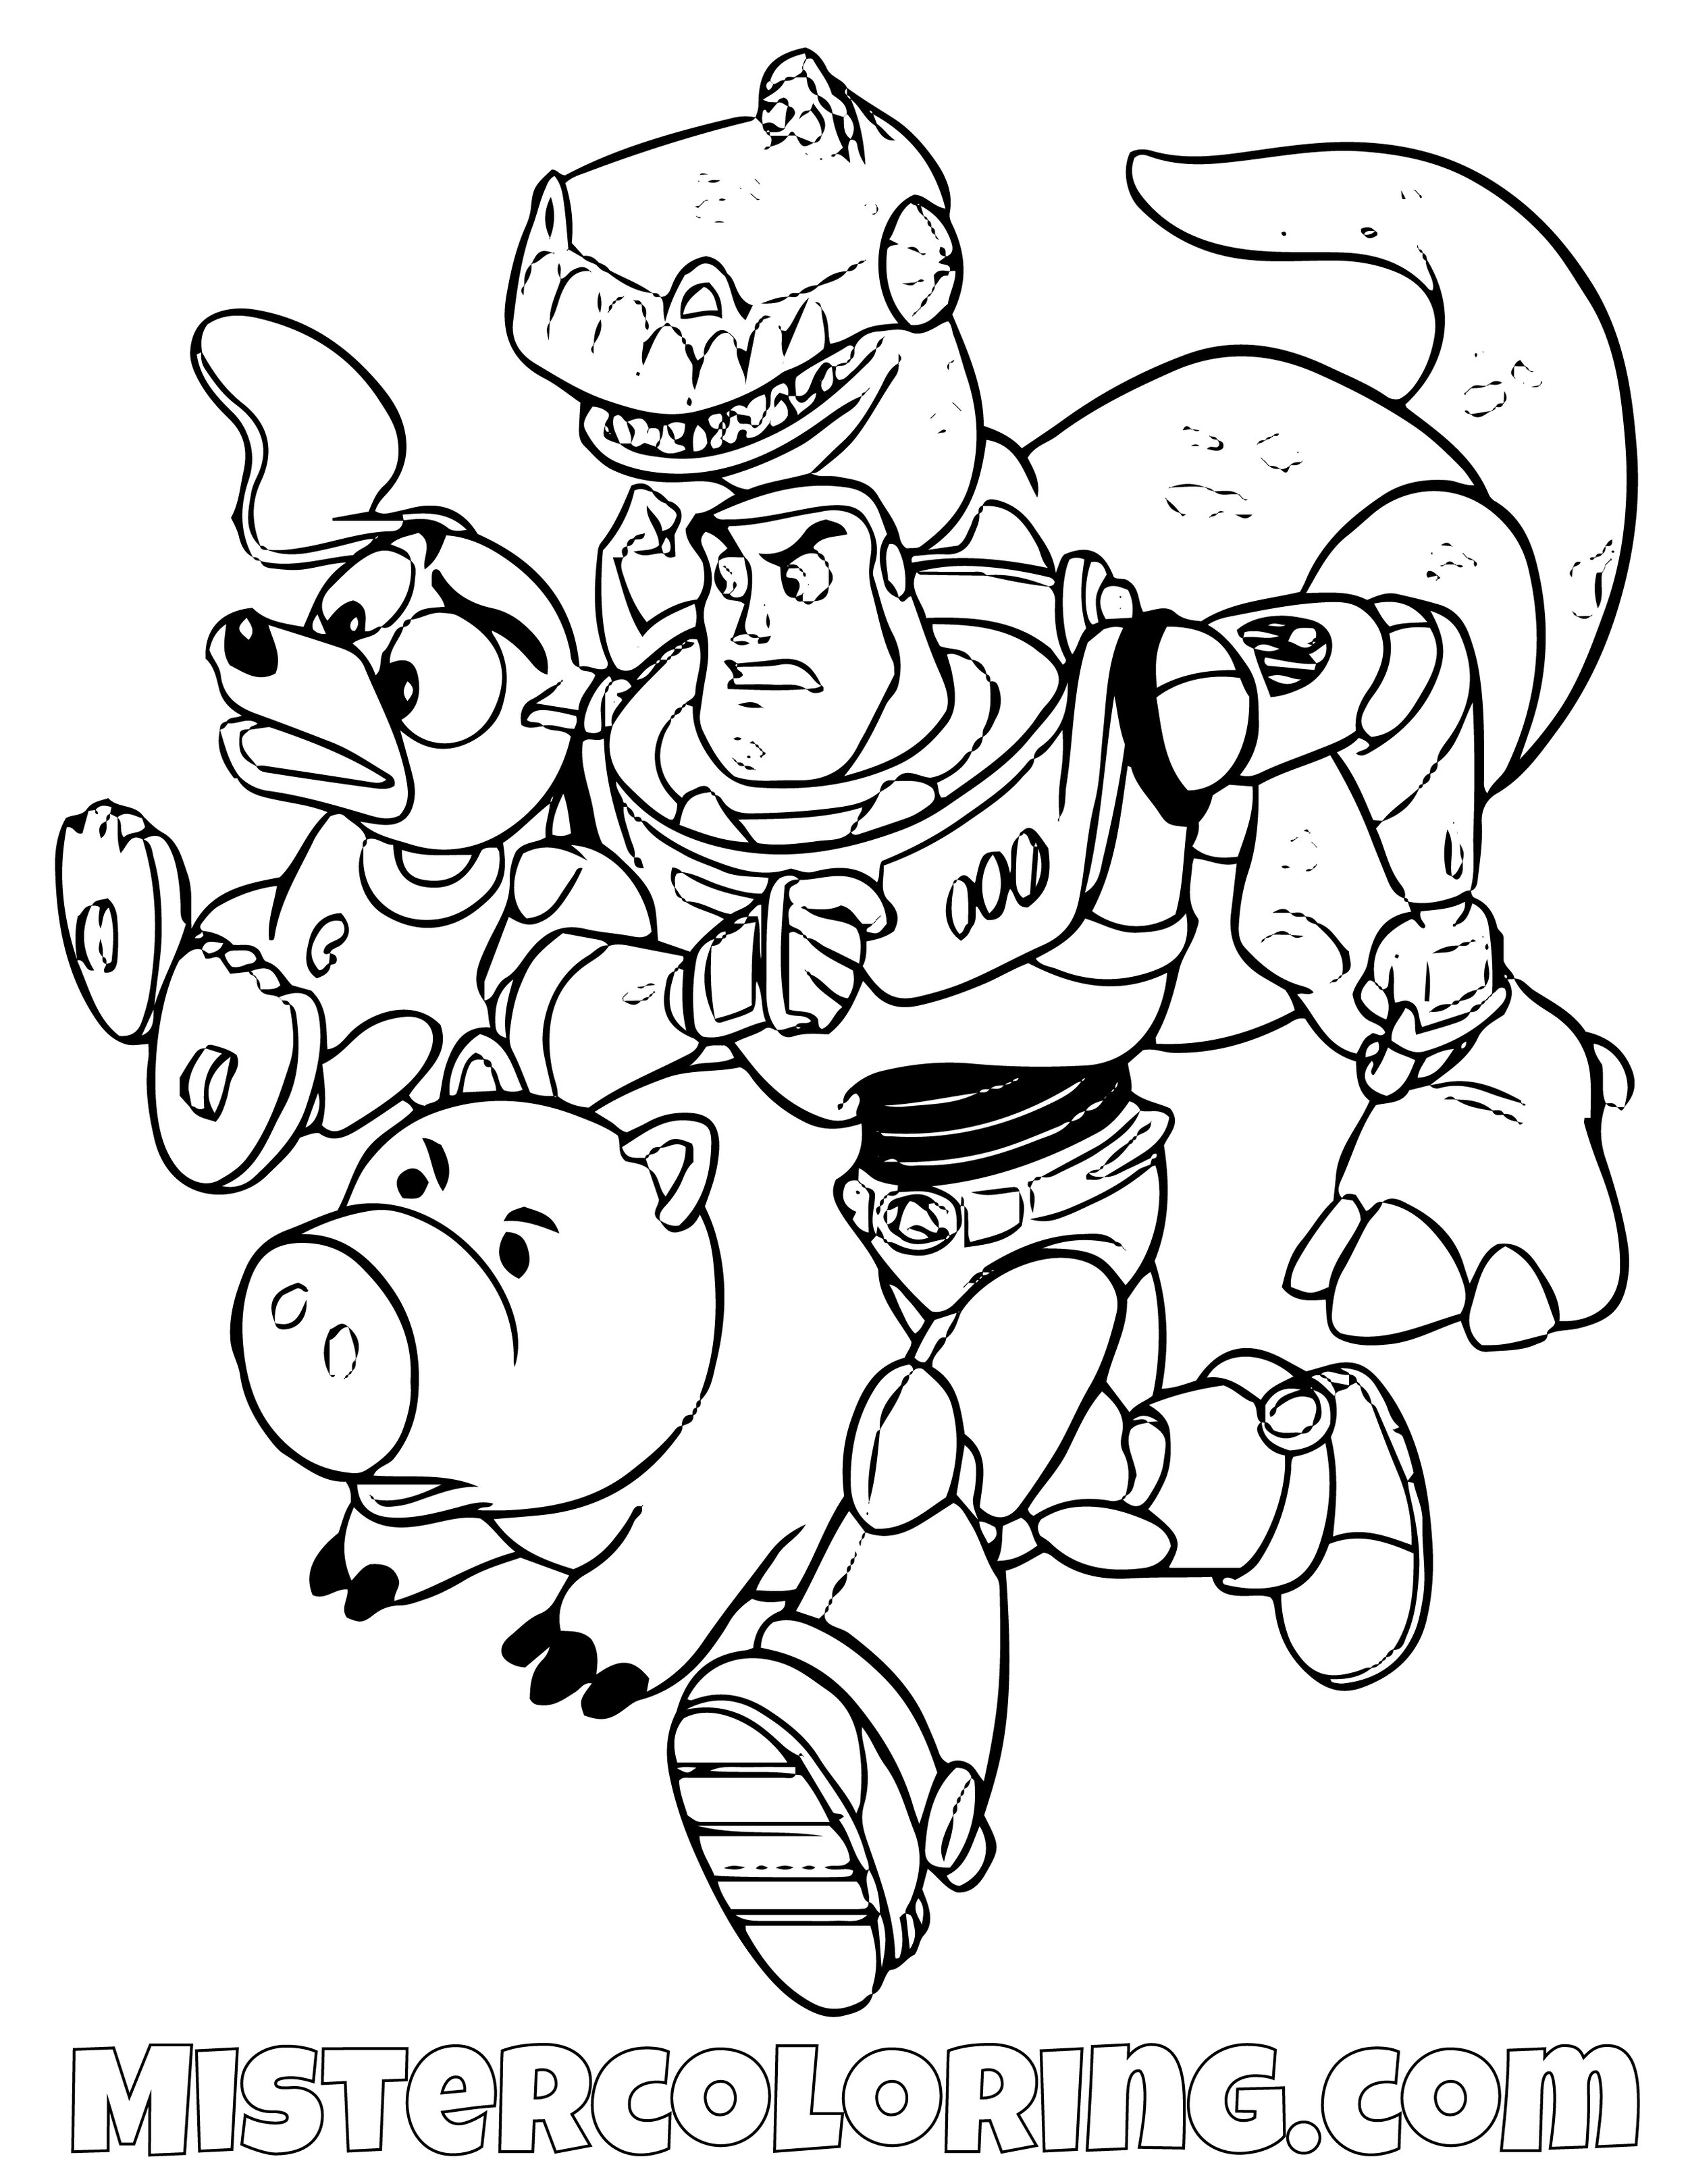 Buzz Lightyear Ham Stringy Dog And Rex Mad Running Toy Story Coloring Page